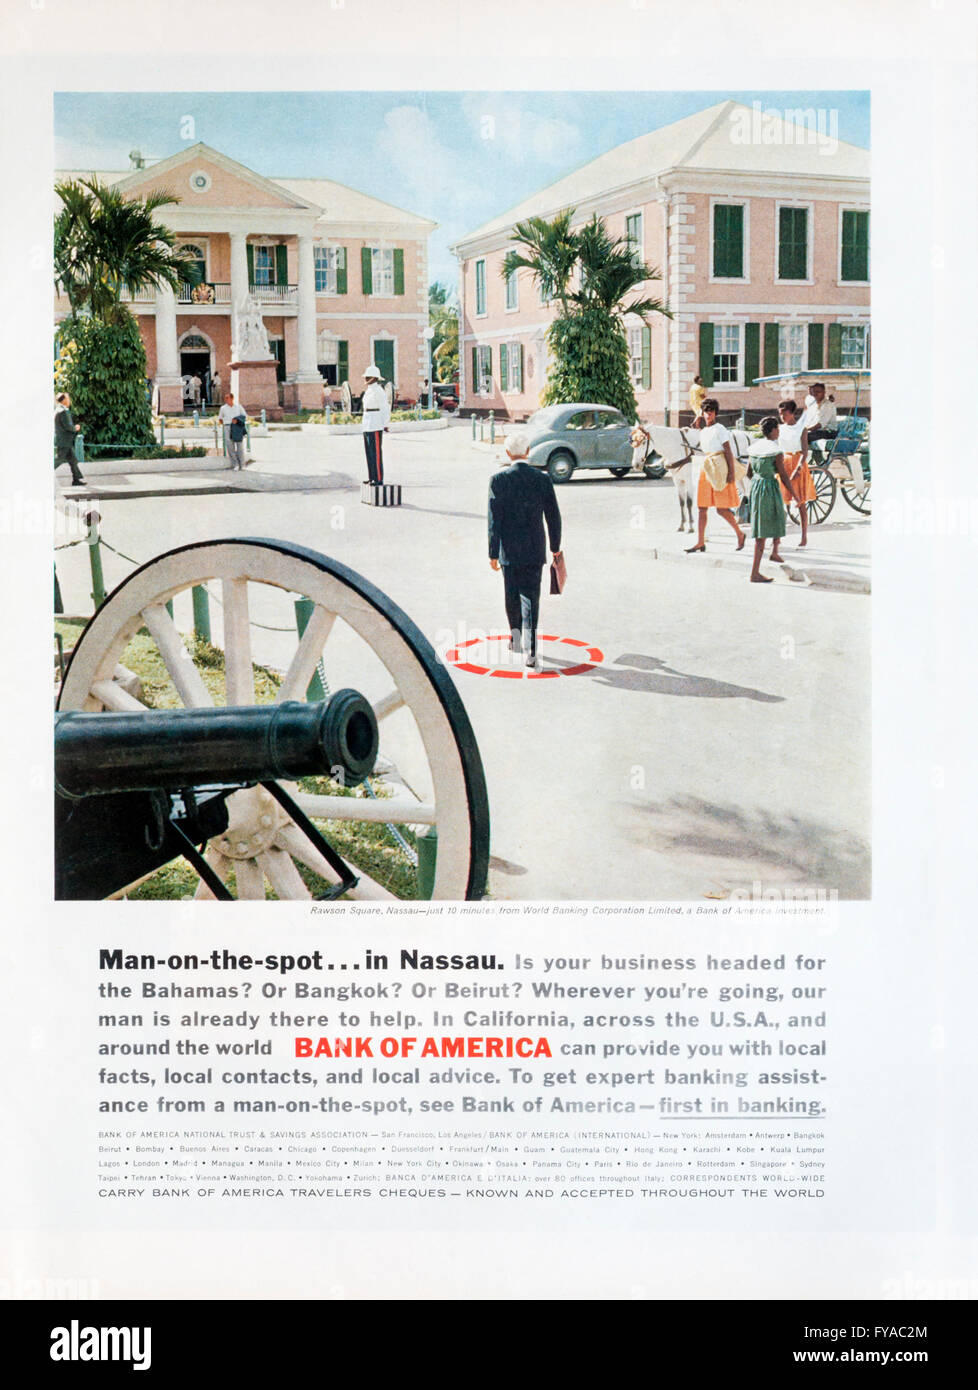 The world bank sl a bangkok - 1960s Magazine Advertisement Advertising Bank Of America Stock Image